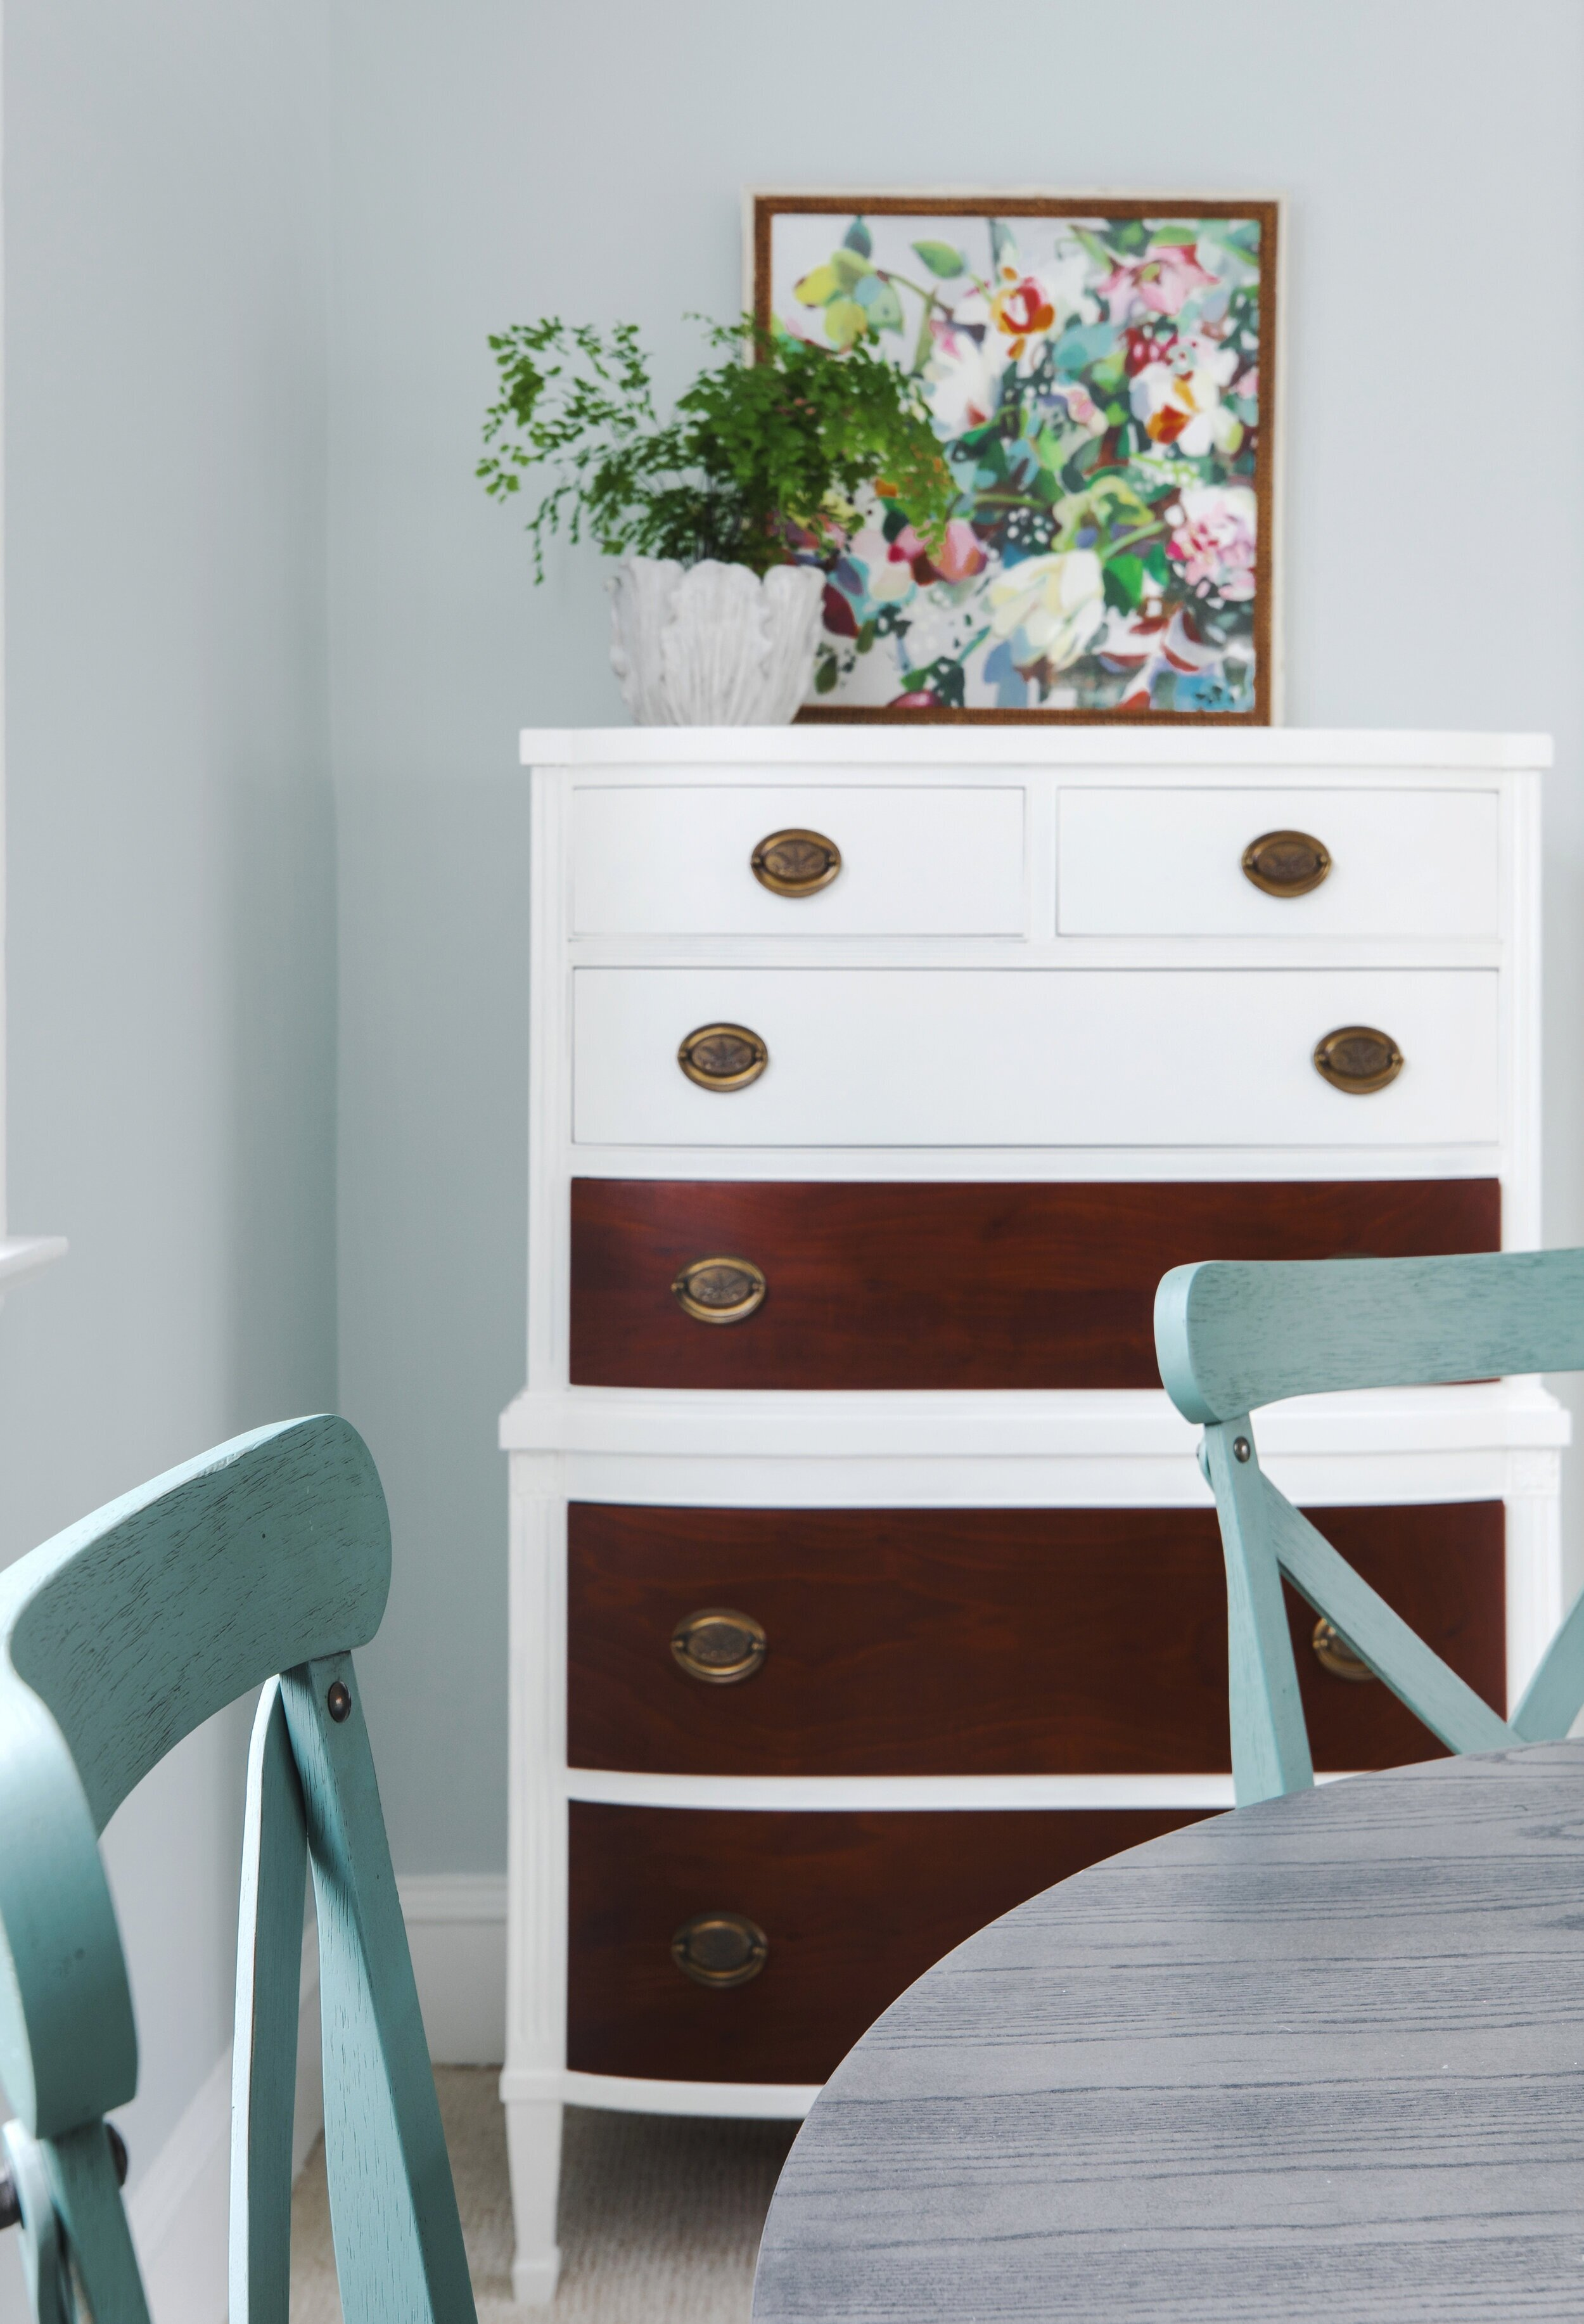 Refinished and painted customer's heirloom dresser   Interior Design:  Mary Jo Major  • Photography:  Constance Mariena